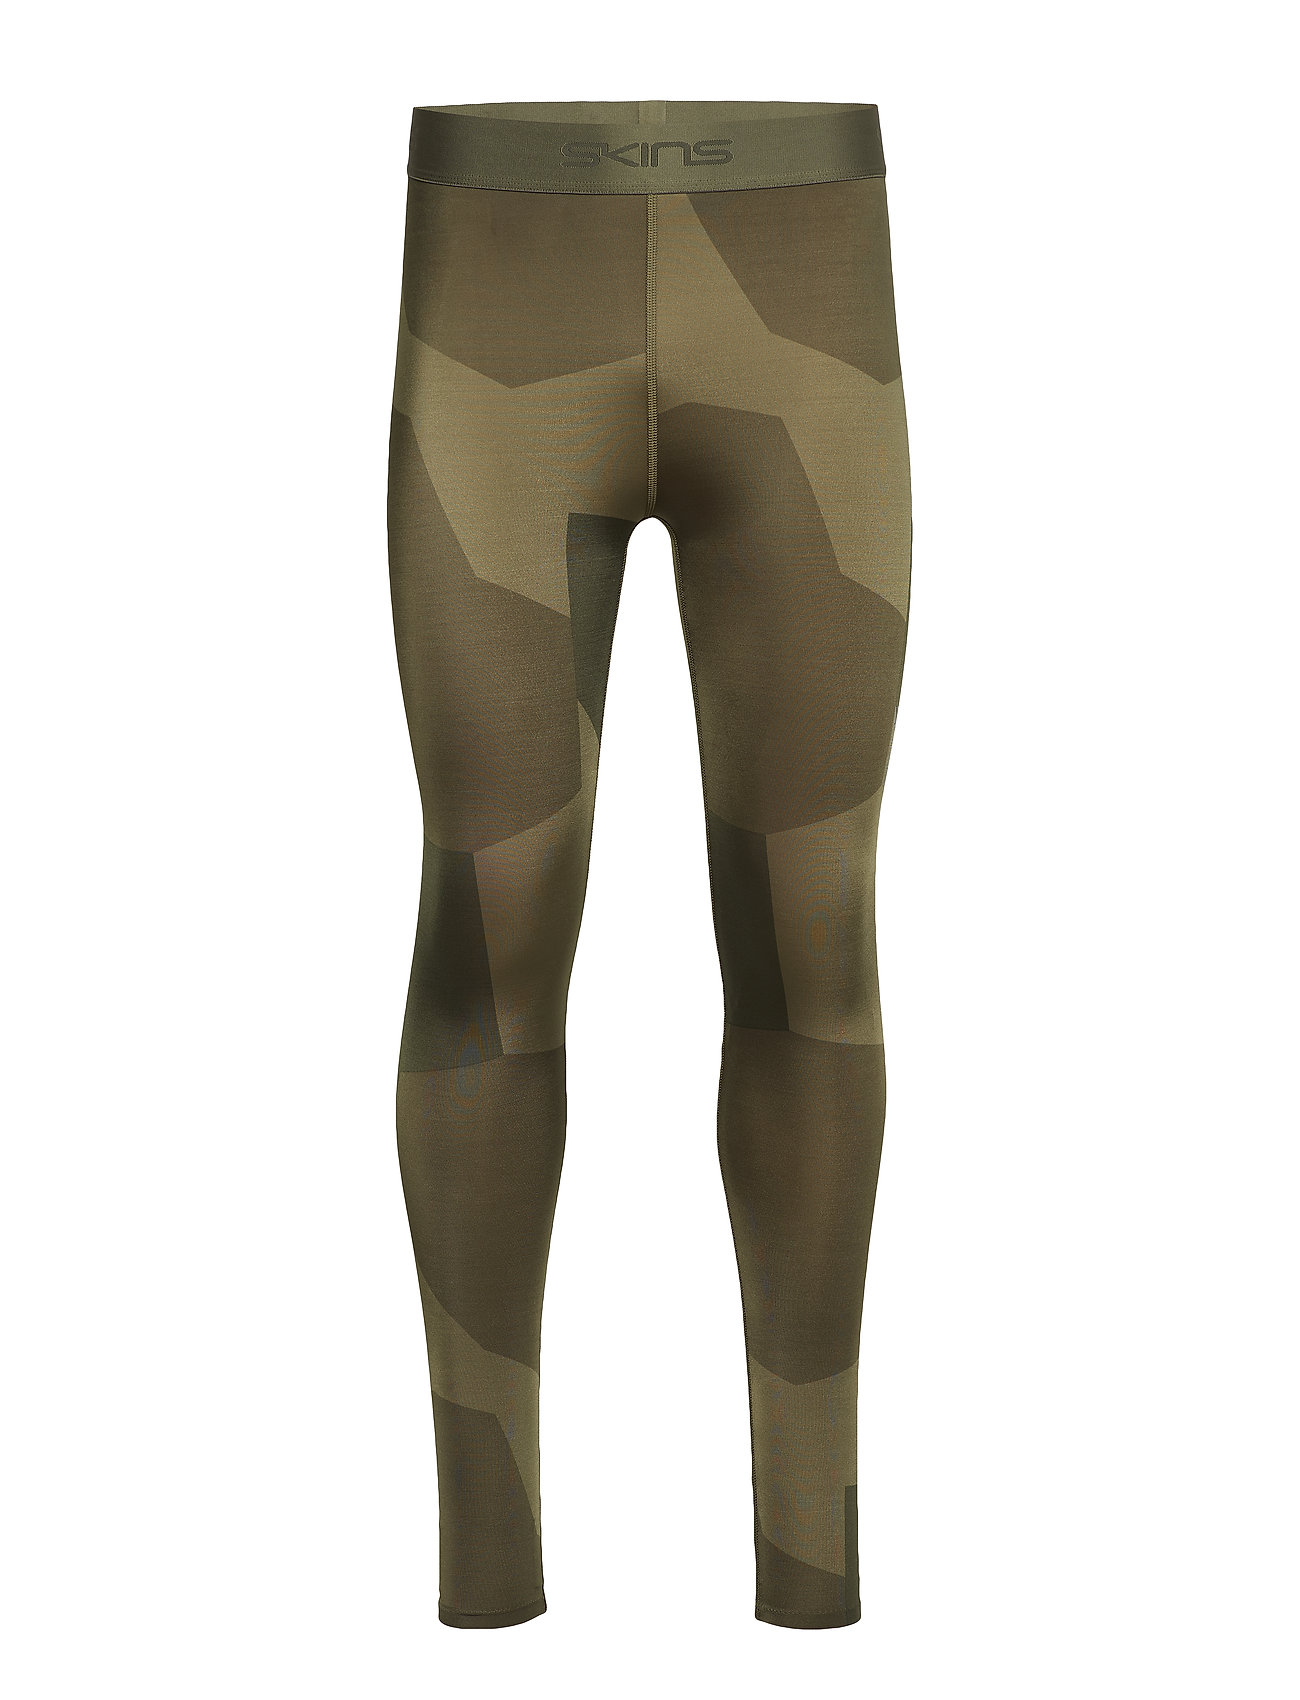 Skins DNAmic Primary Mens Long Tights - DECONST CAMO UTILITY